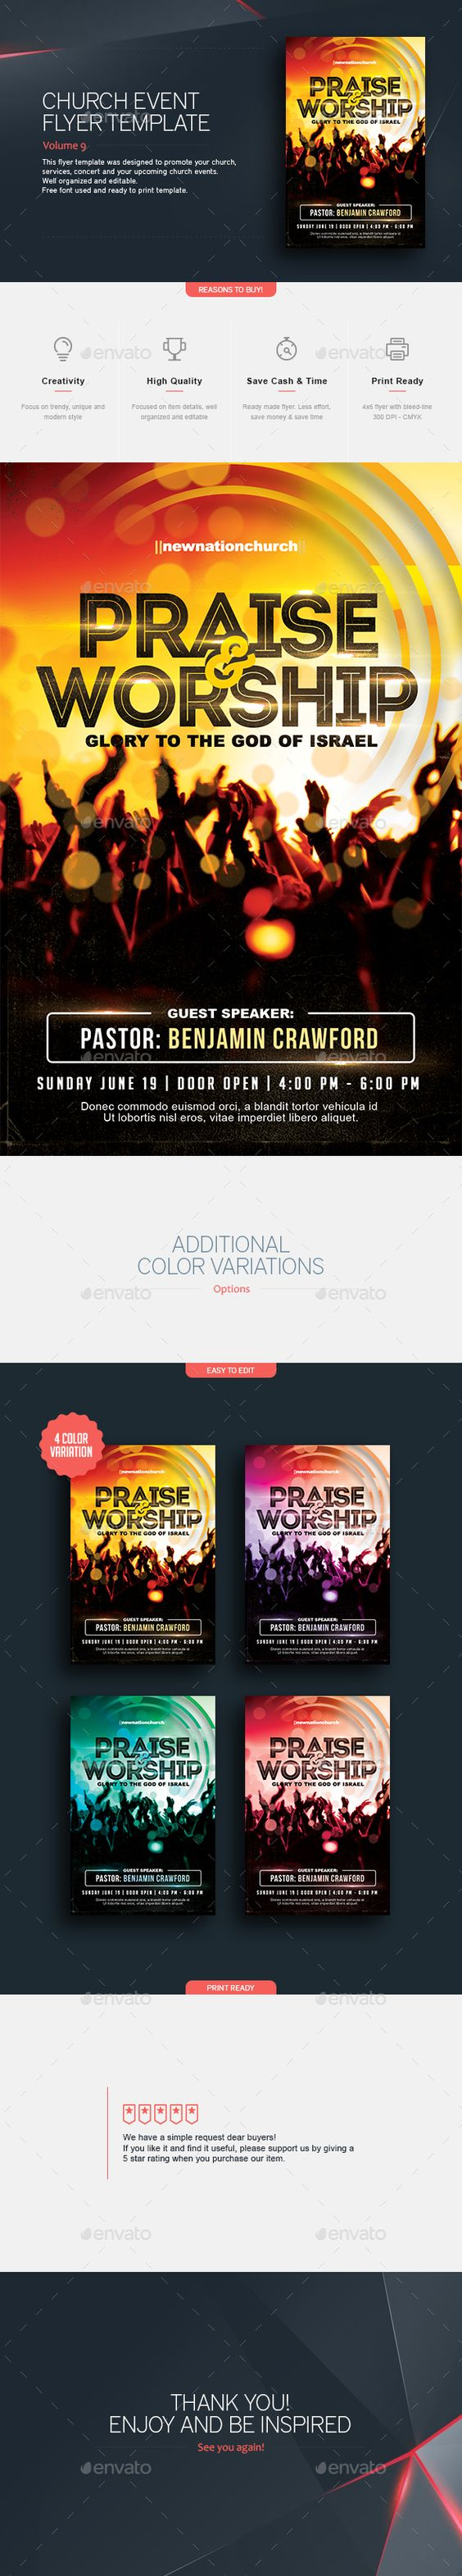 praise and worship v 2 church flyer flyer template church and buy praise and worship church flyer by teestrim on graphicriver church flyer template this flyer template was designed to promote your church